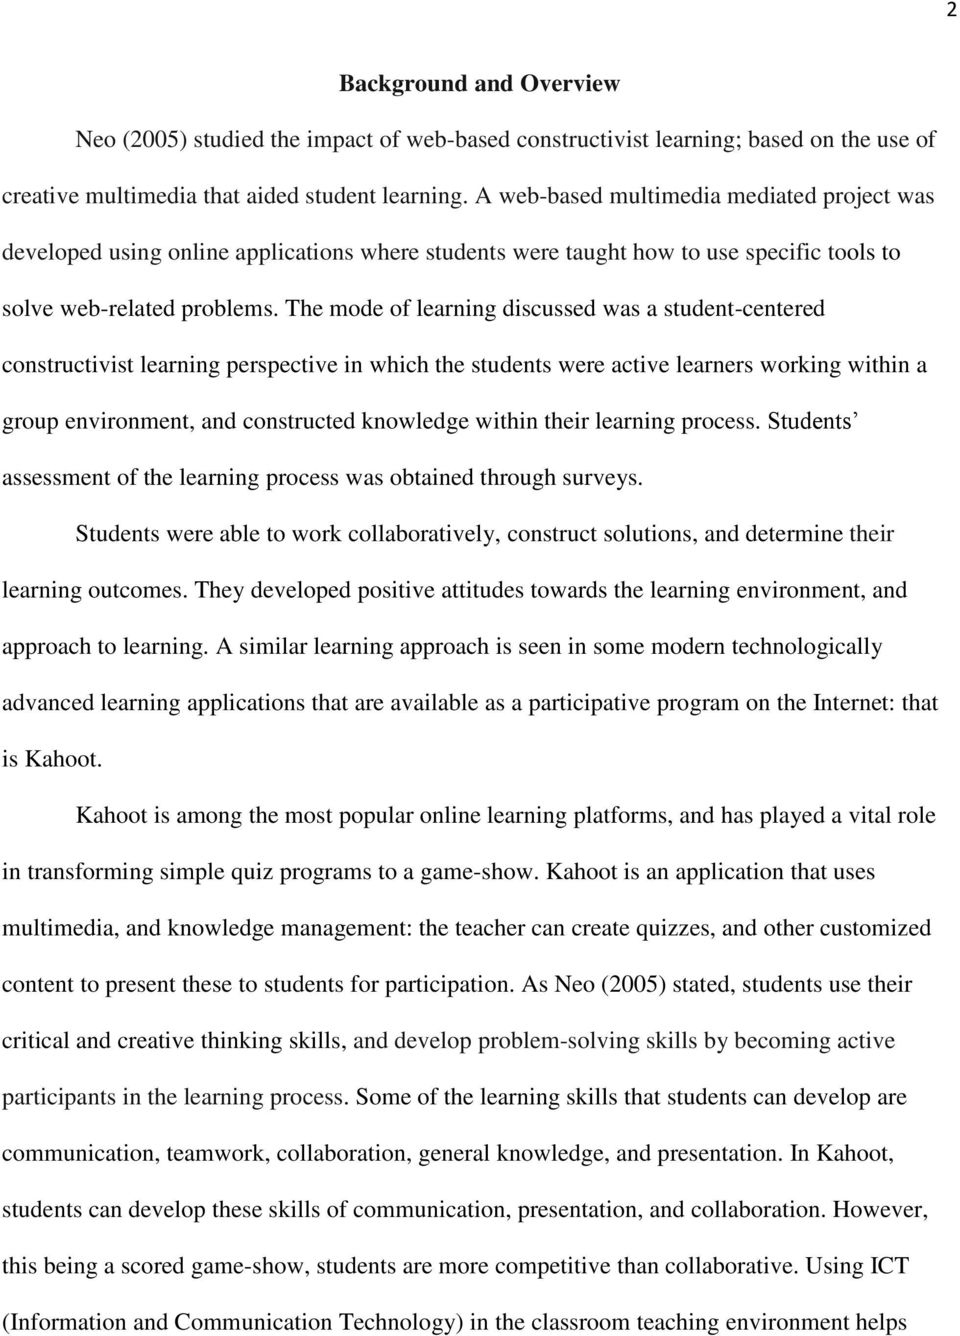 The mode of learning discussed was a student-centered constructivist learning perspective in which the students were active learners working within a group environment, and constructed knowledge